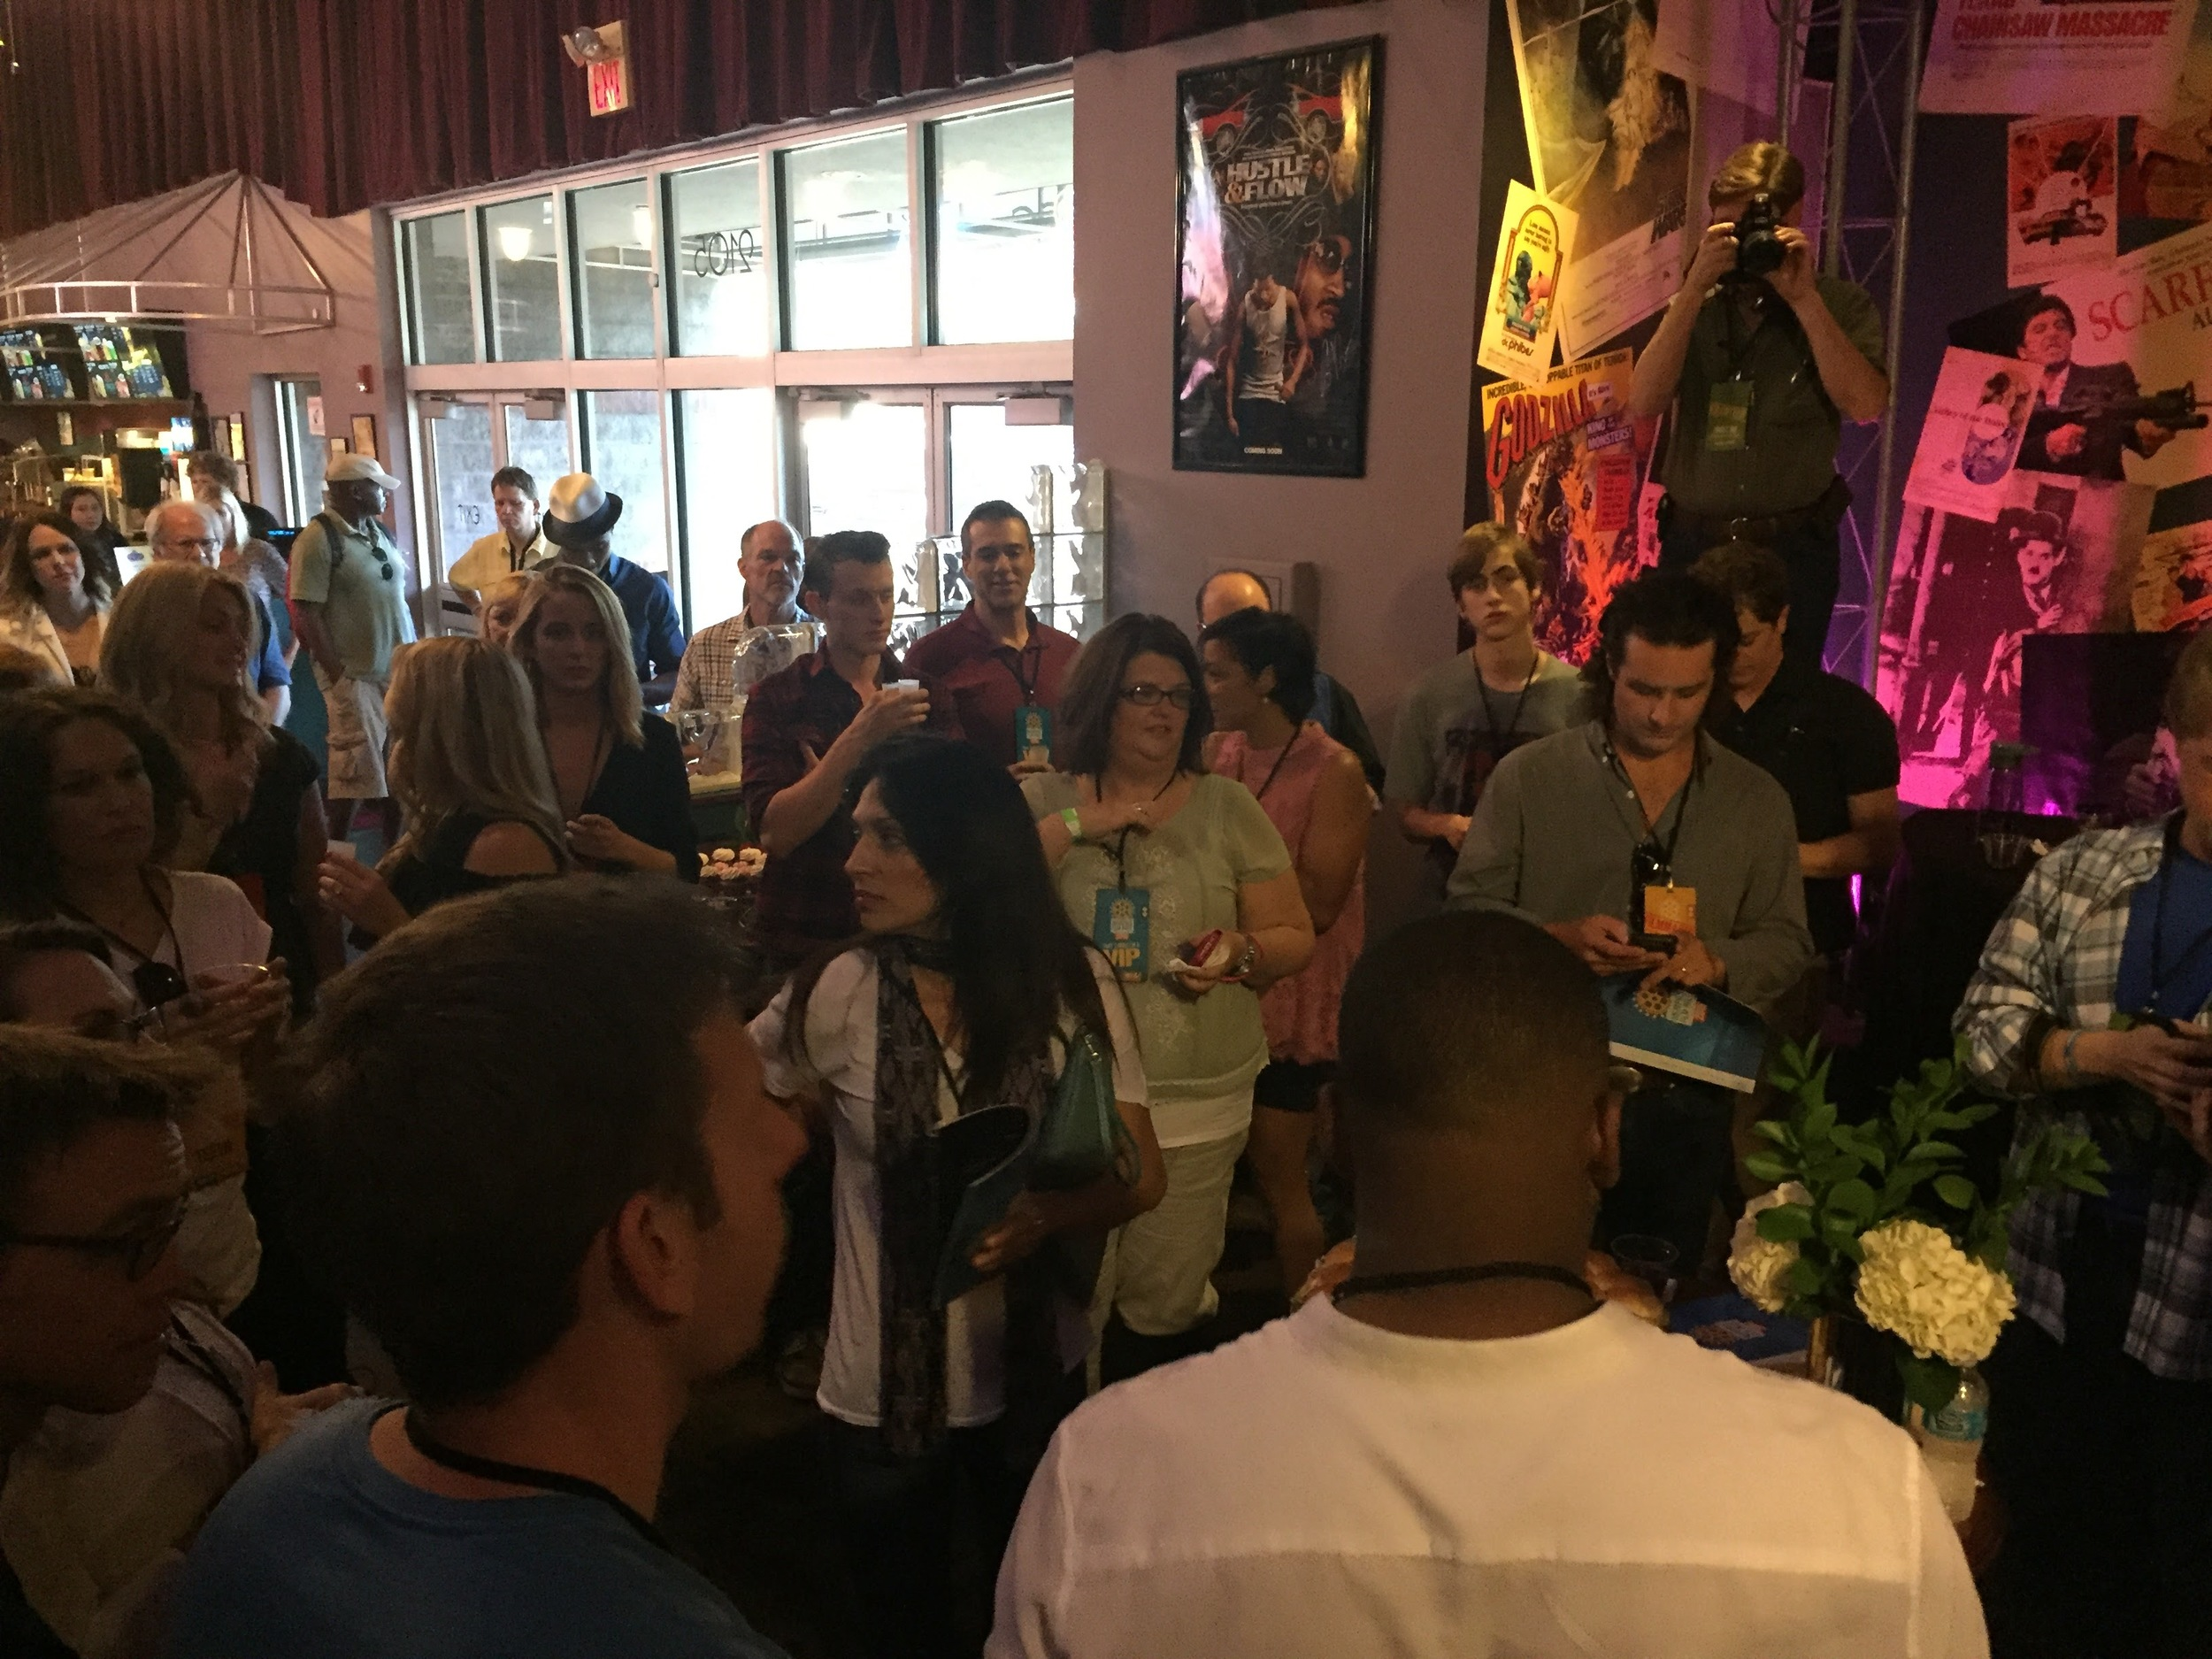 Standing in the VIP area with the other nine filmmakers, festival judges, and festival staff.